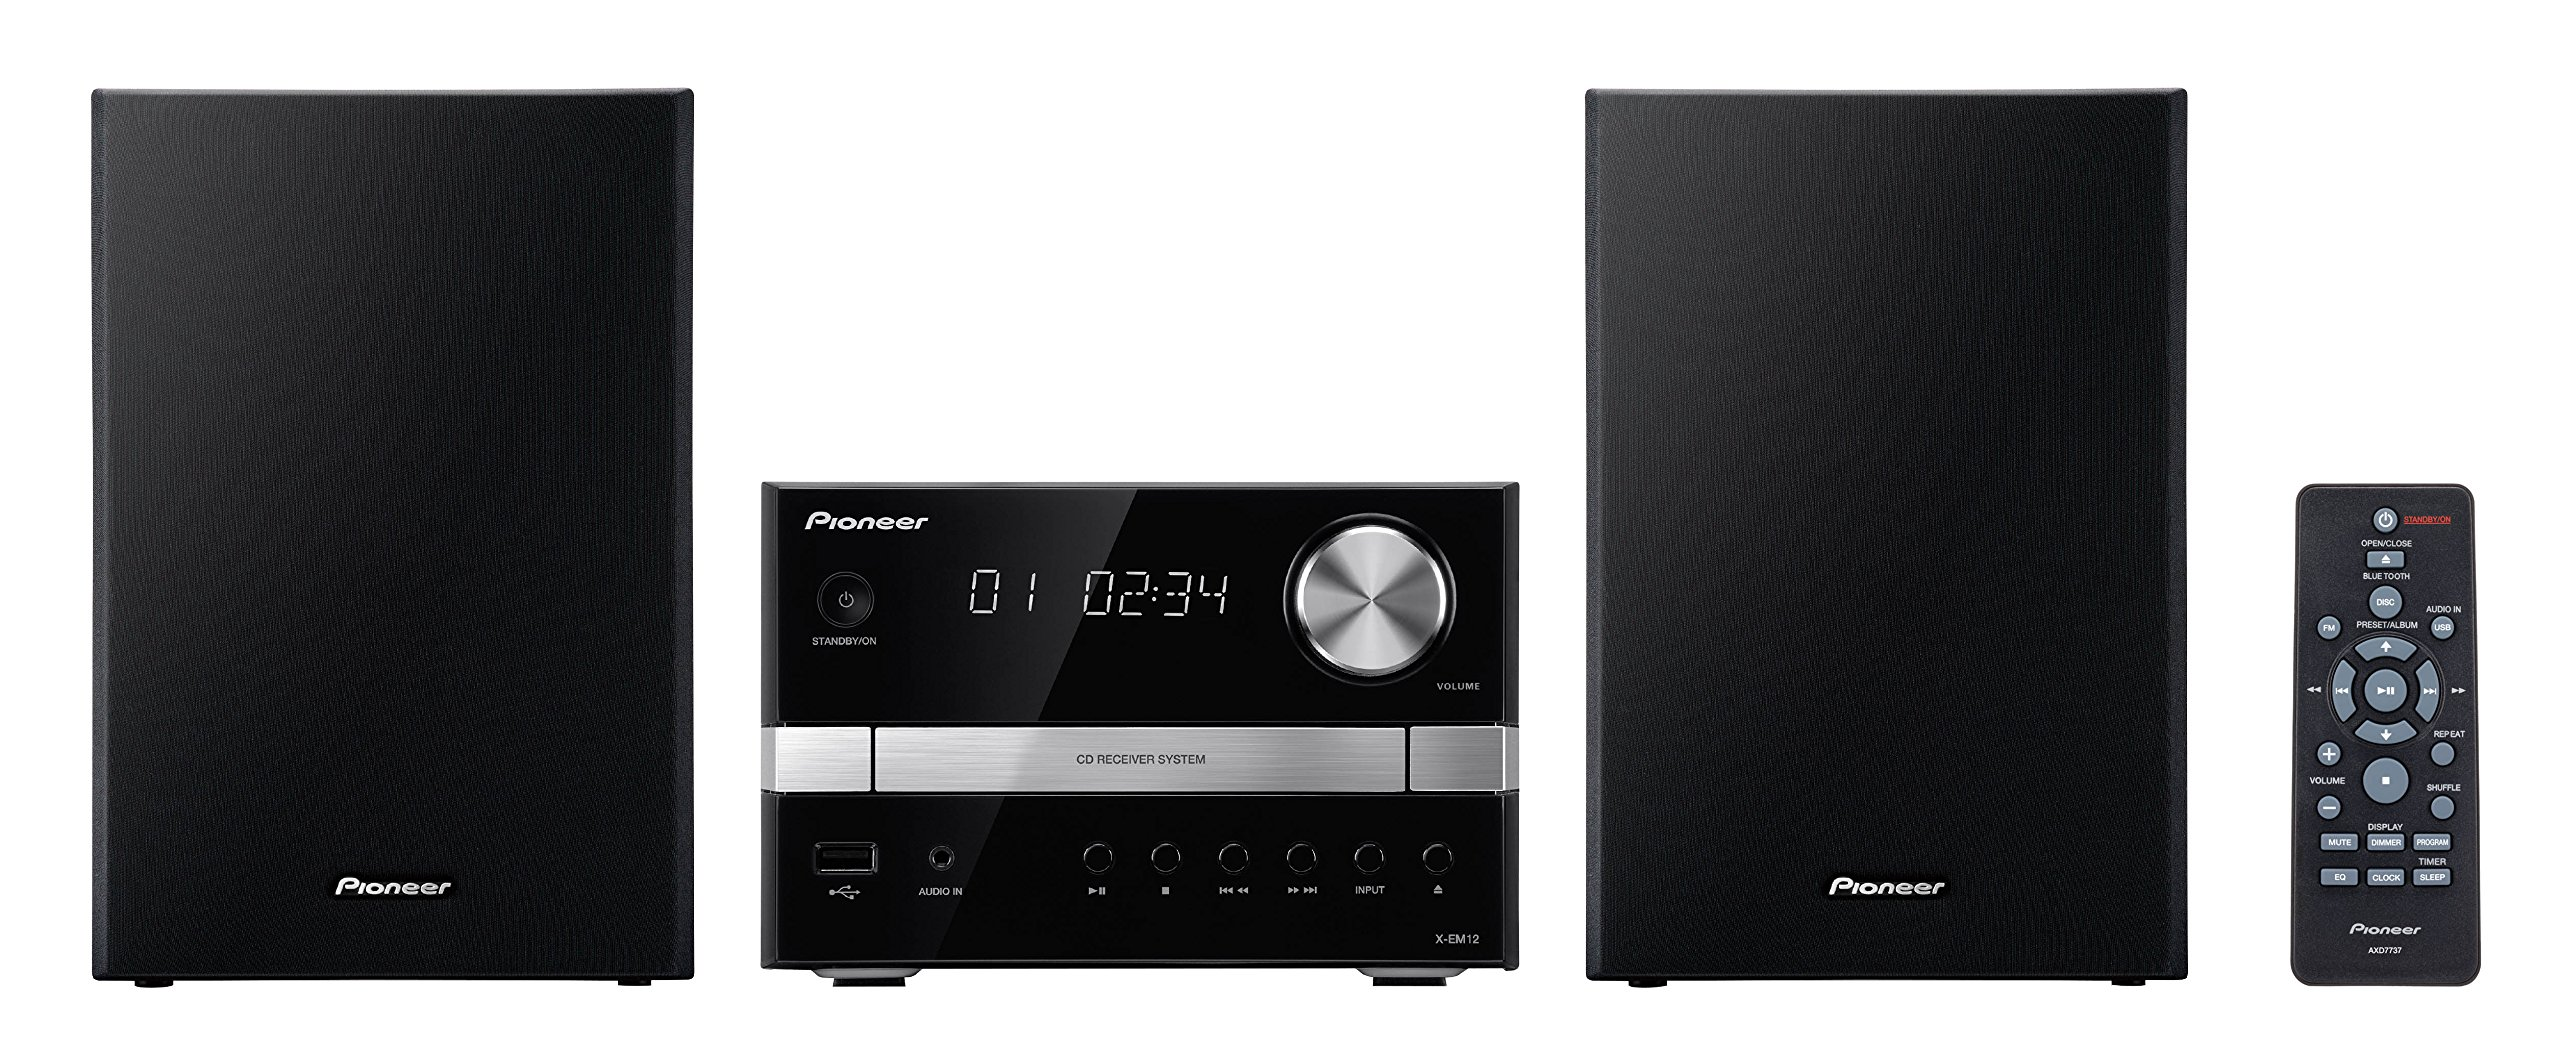 Pioneer X-EM12 2x15W Micro Music System with CD, USB and FM Tuner - Black